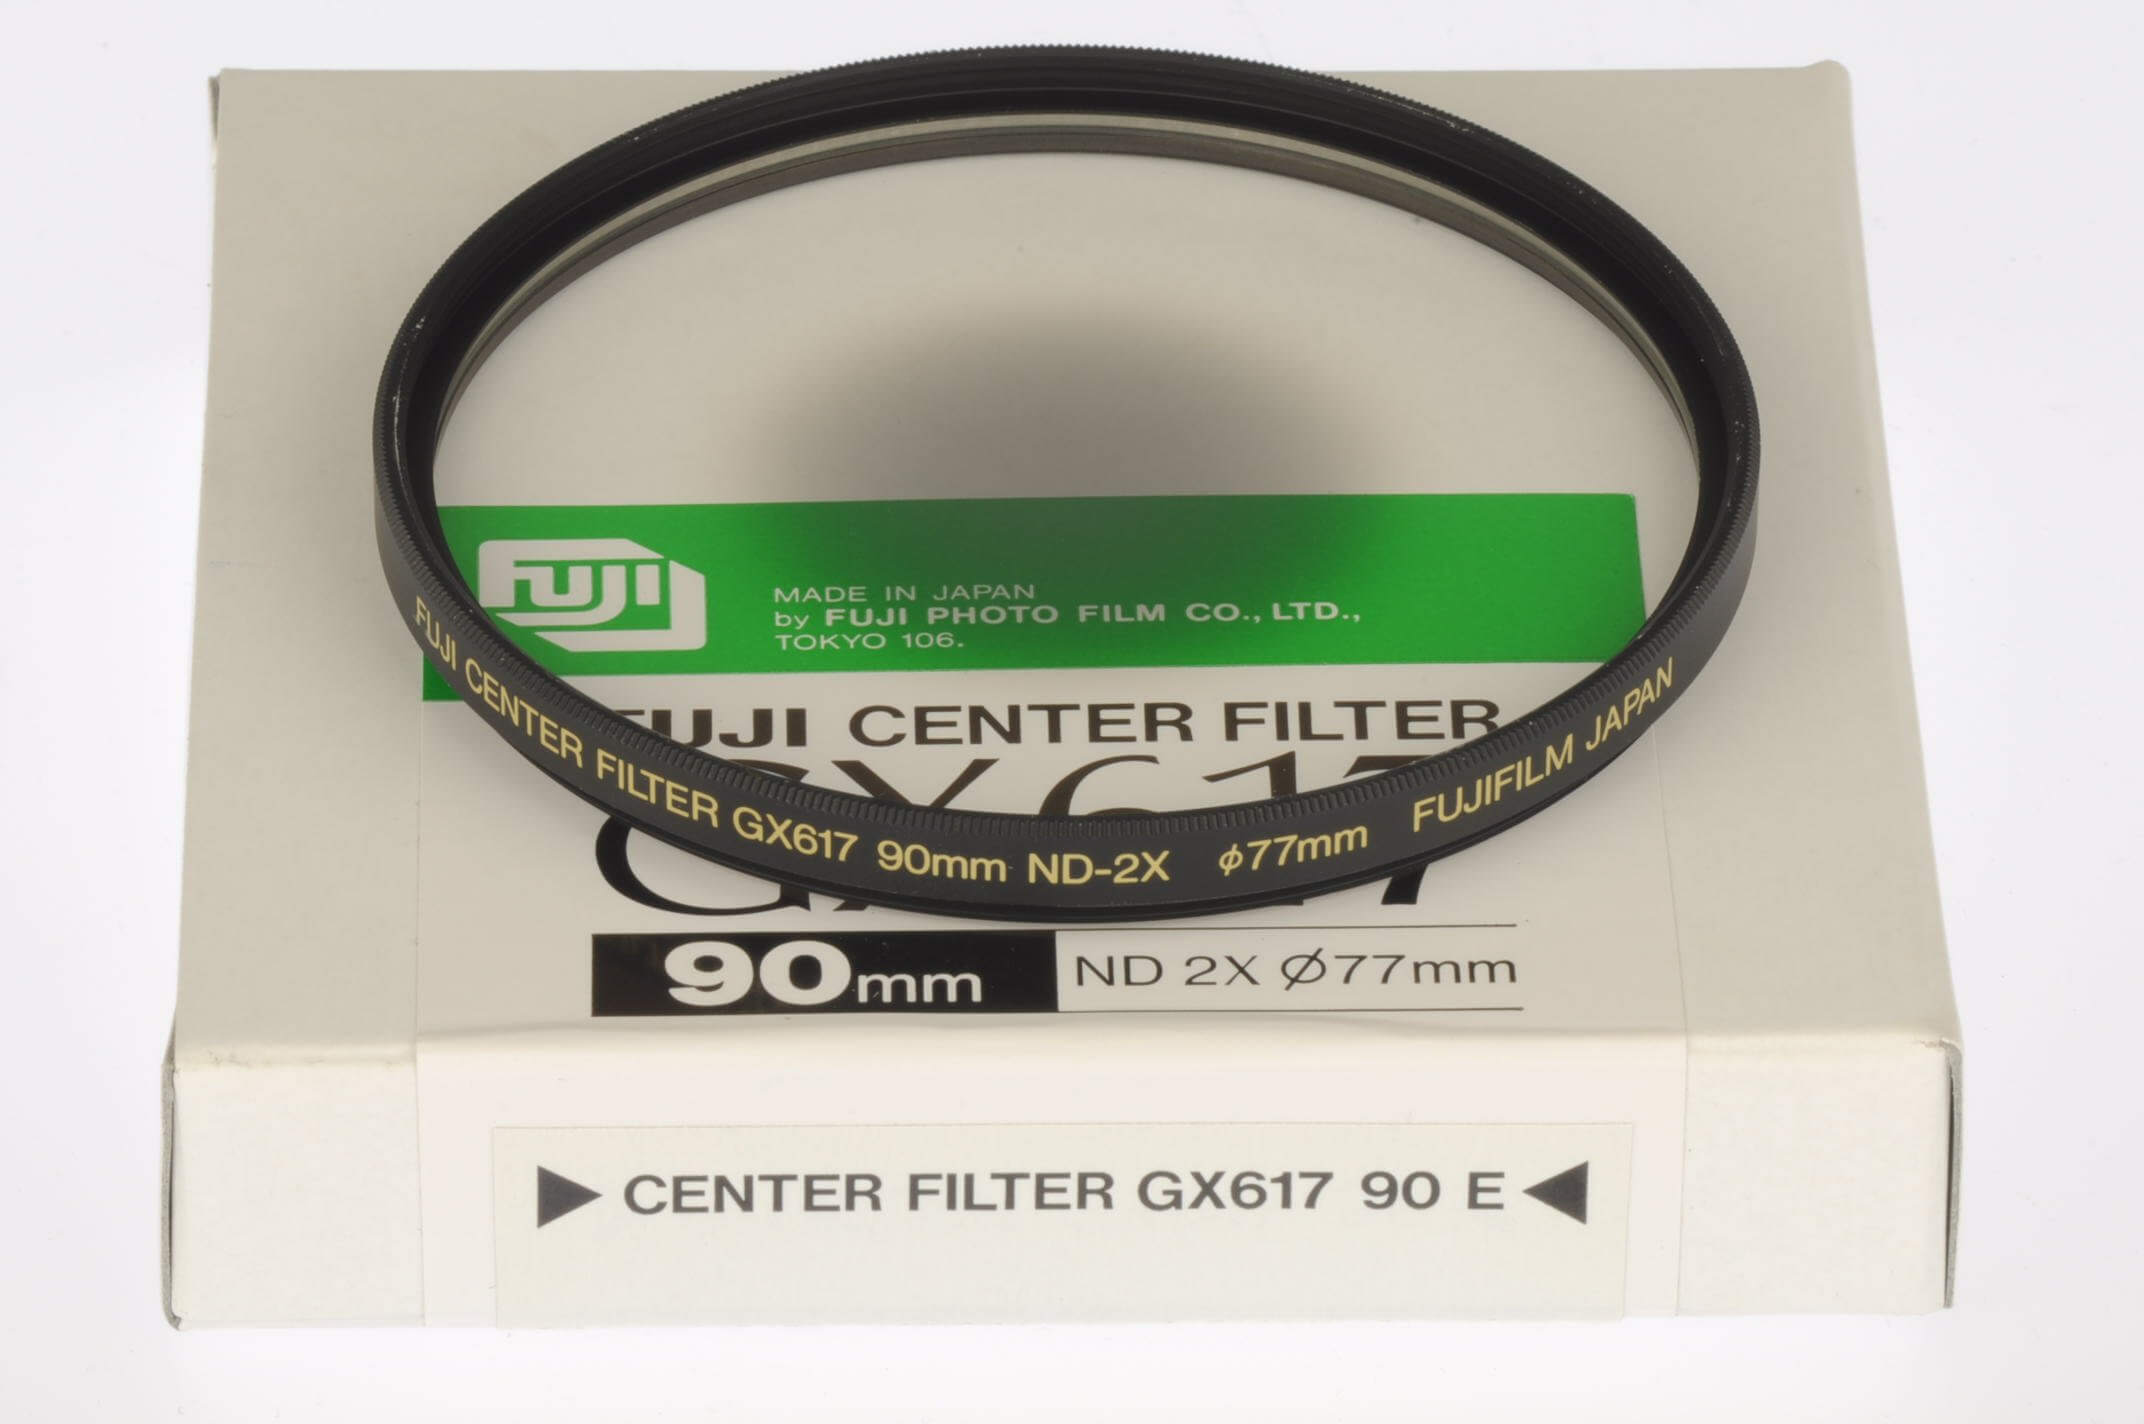 Fuji GX617 centre filter for 90mm lens, boxed and unused